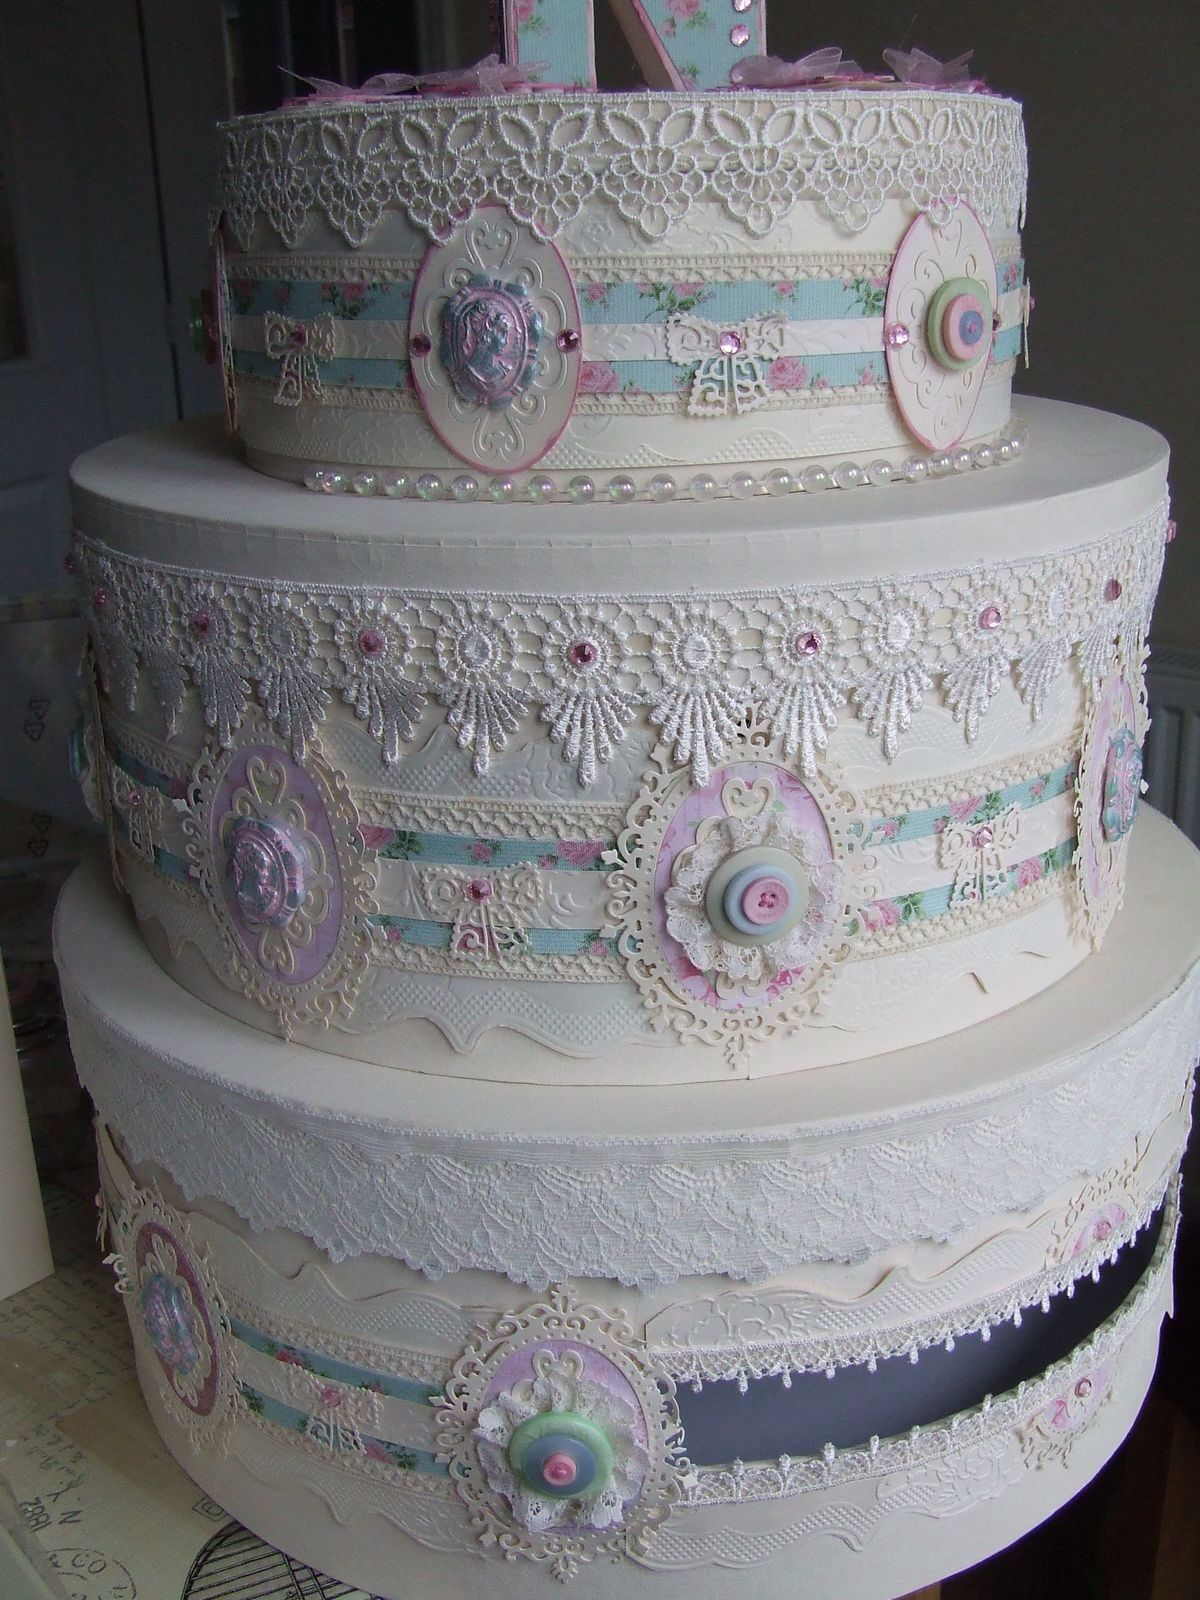 Tattered Lace s used to decorate a wedding cake box